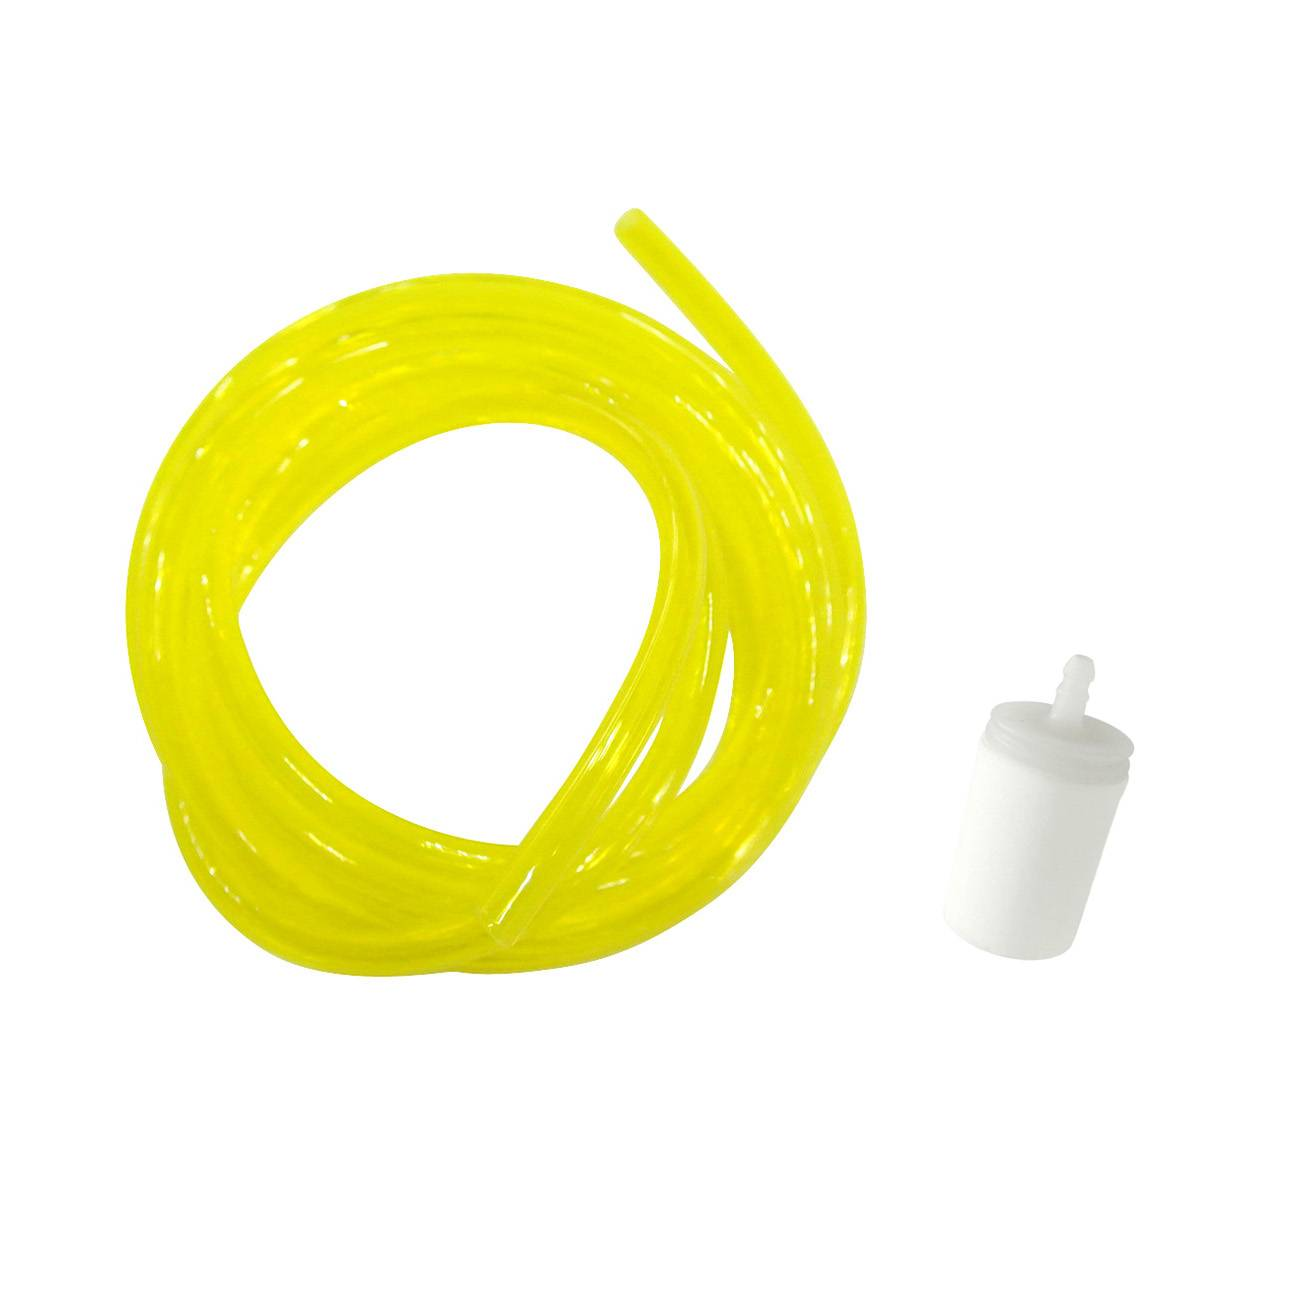 Fuel Line Filter Fits Husqvarna 50 51 55 61 268 272 Xp 345 Homelite 360 Chainsaw In Chainsaws From Tools On Alibaba Group